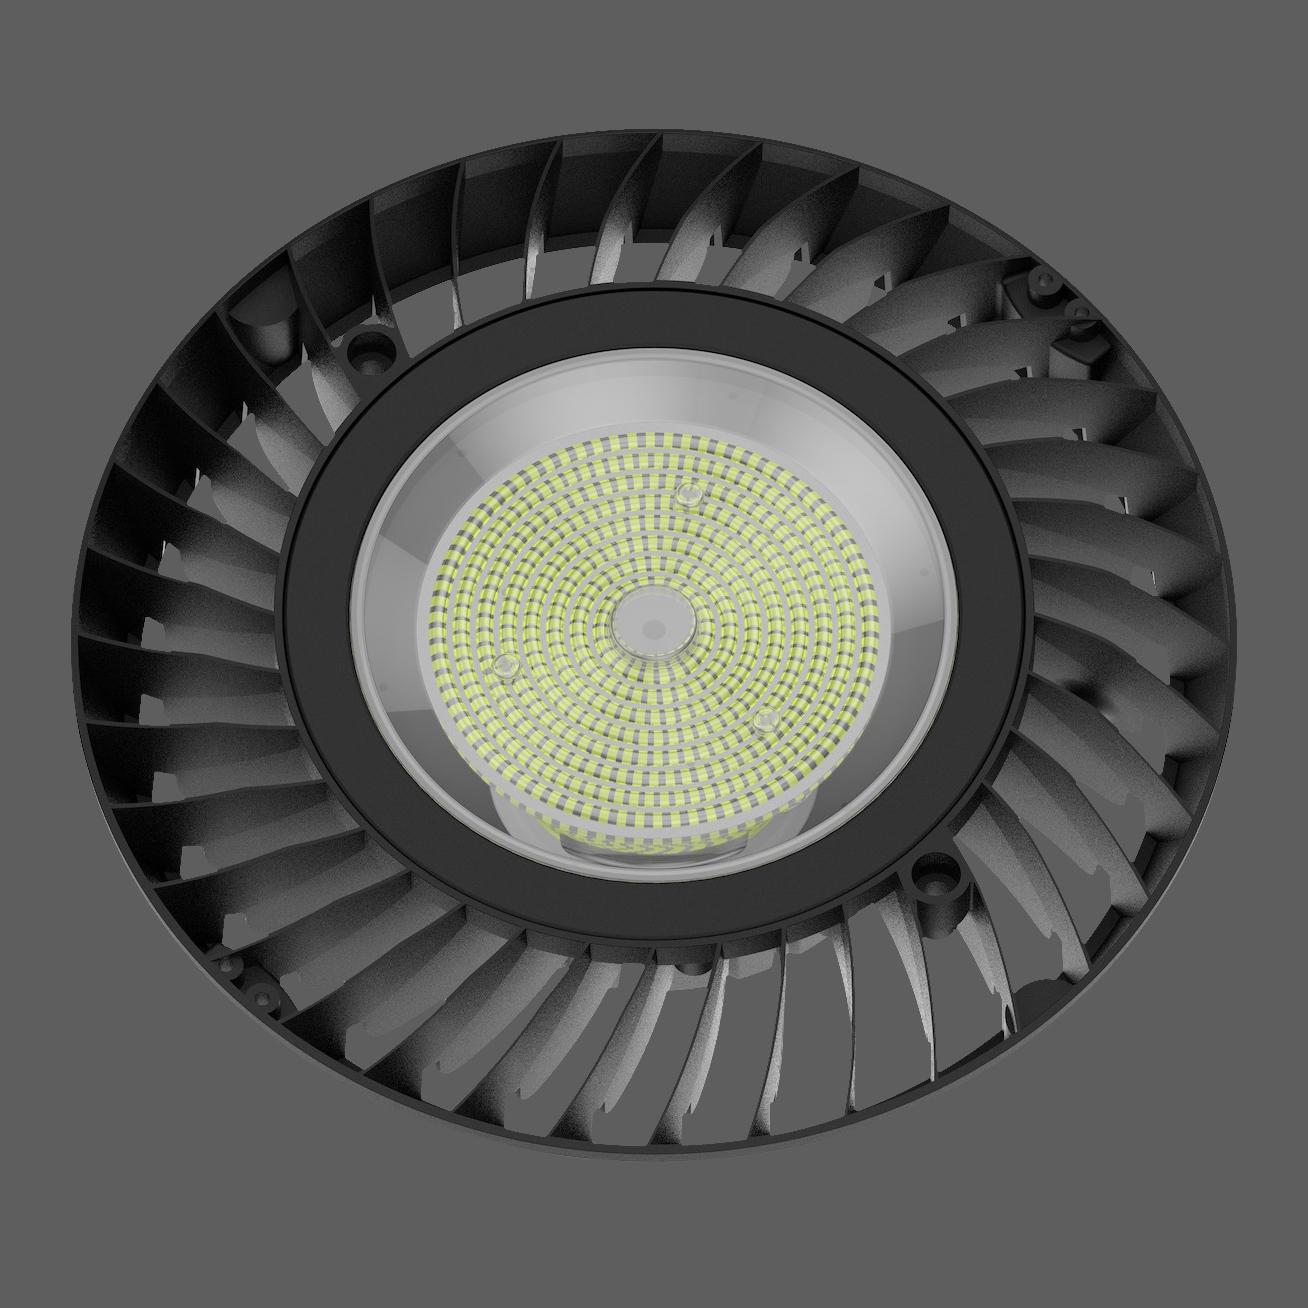 1 Stk Arktur Eco LED 220W 840 30800lm IP65 90° LITP0004--